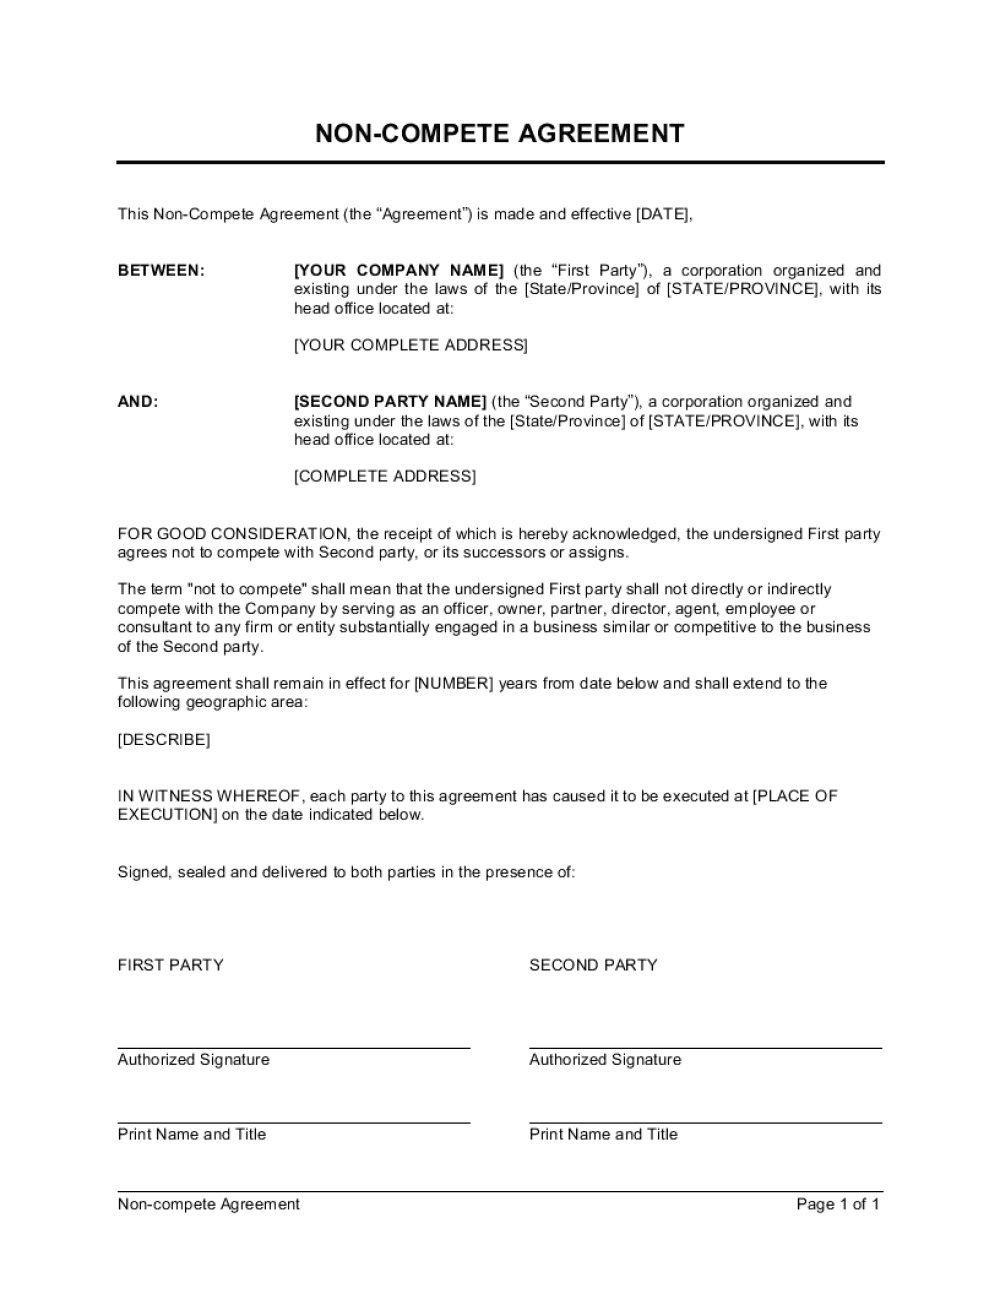 004 Unbelievable Non Compete Agreement Template Word Example  Microsoft Non-compete FreeFull